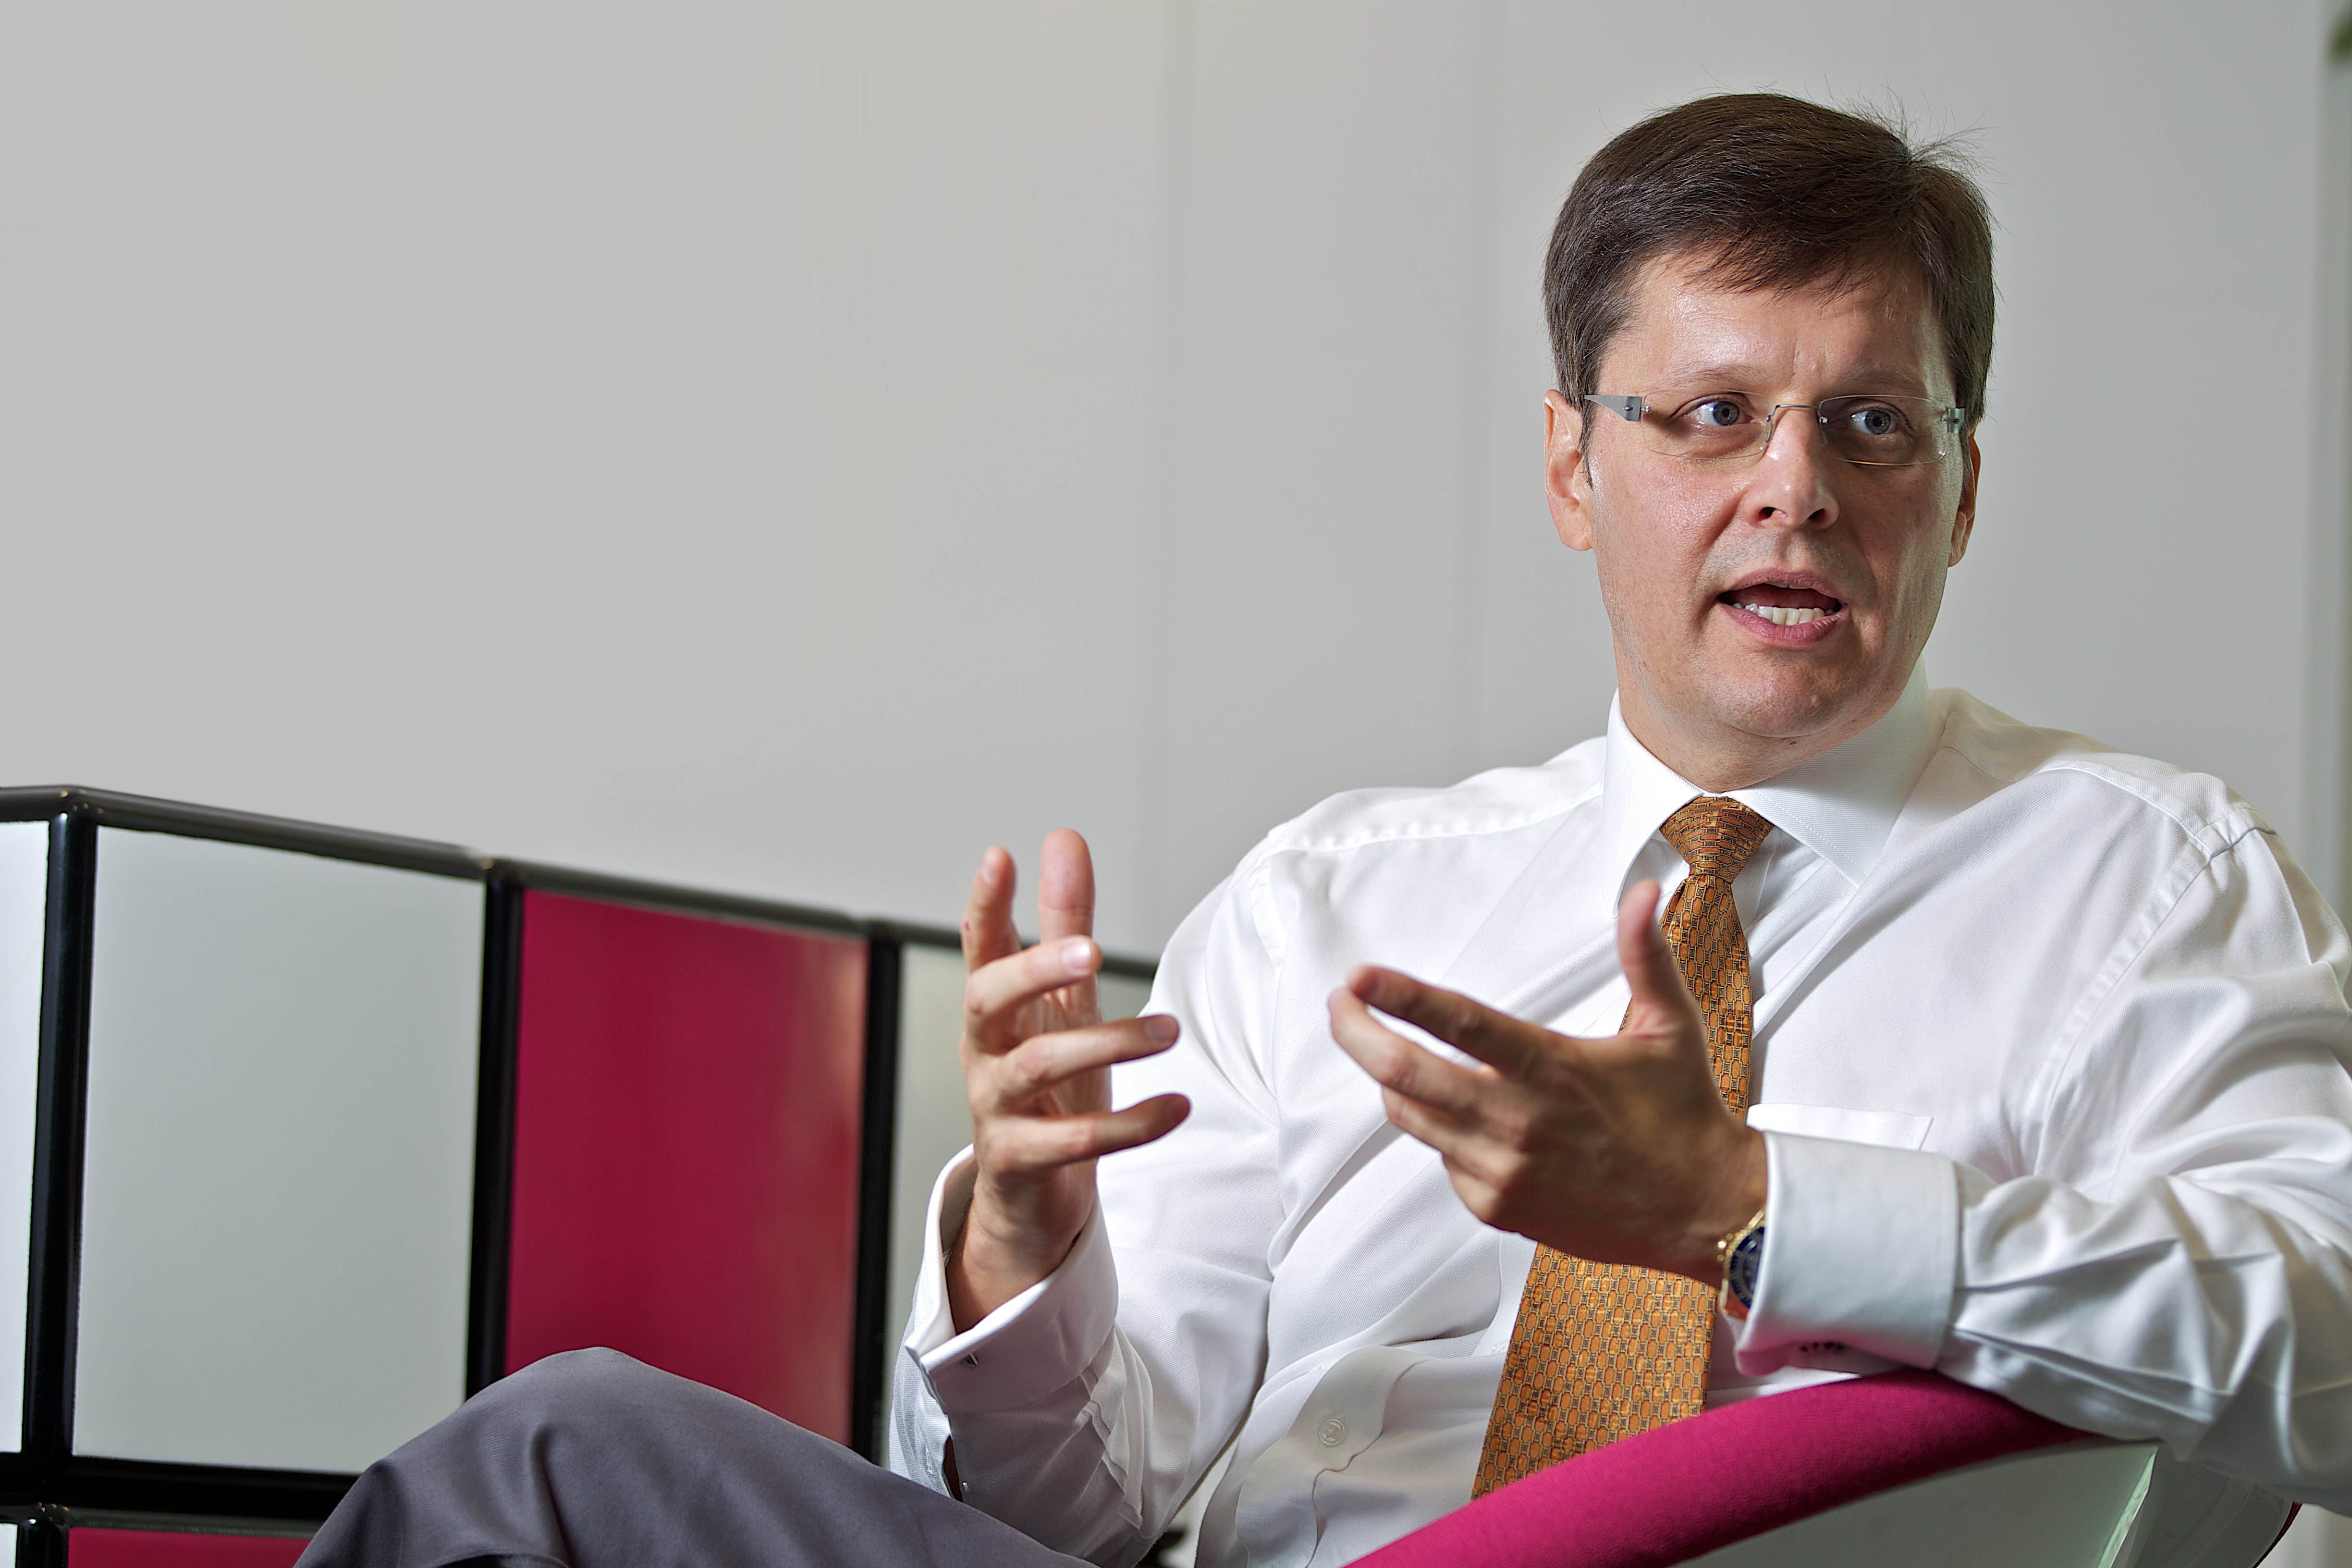 Steve Hamilton-Clark, CEO of TNS, speaks to Daily News. (Picture distributed by TNS)